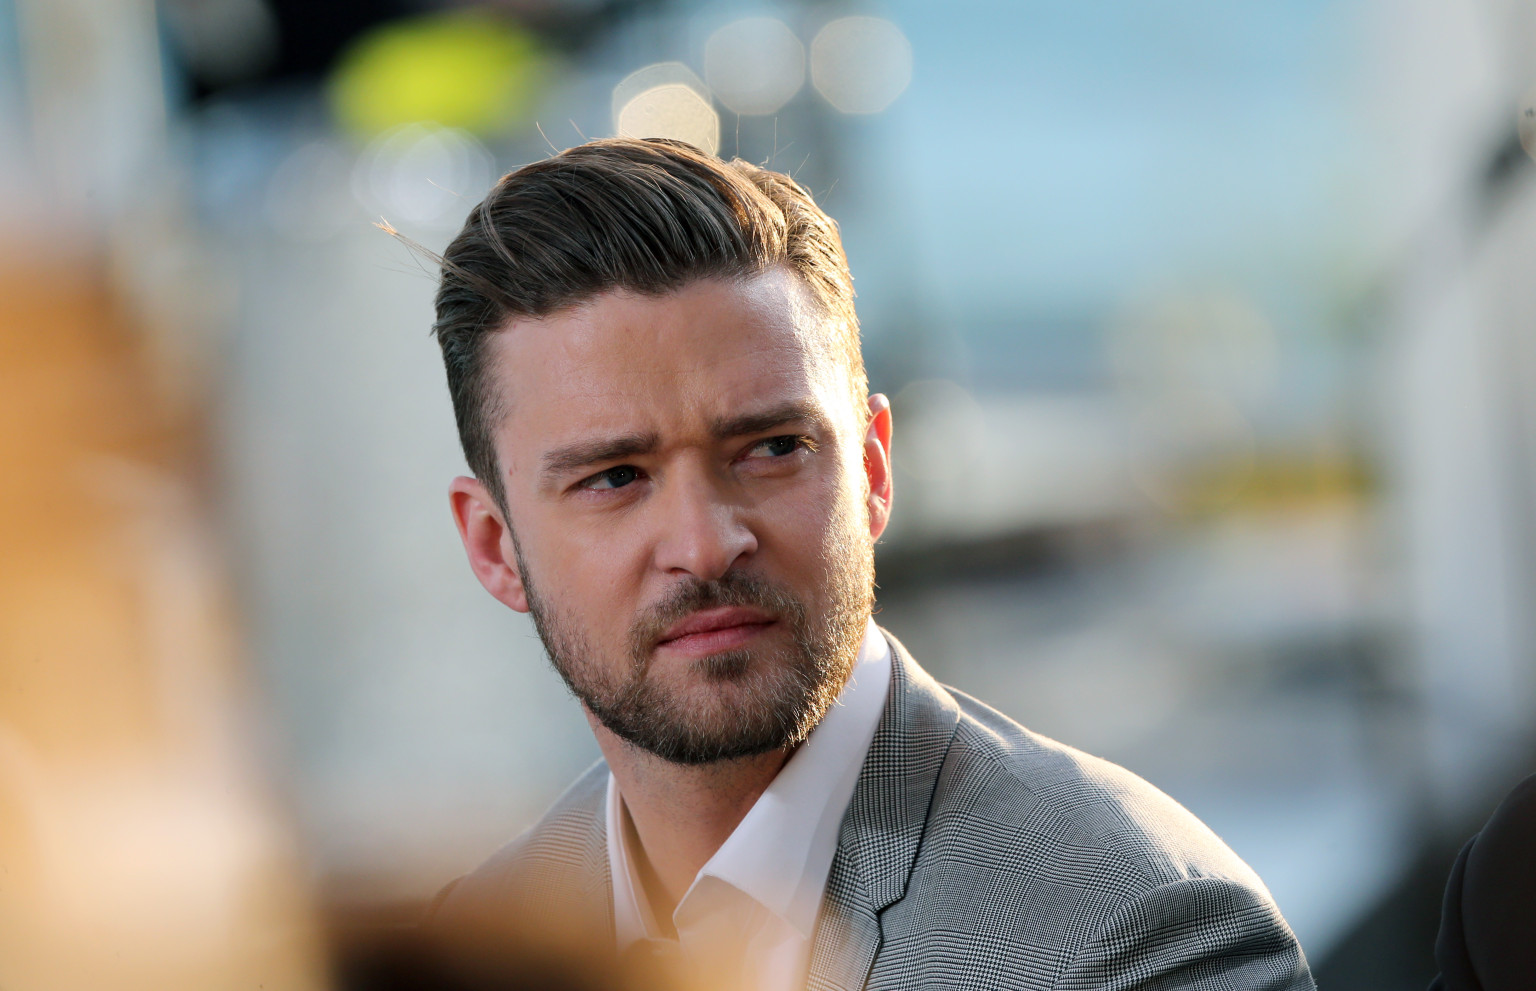 Justin Timberlake's 'Tunnel Vision' Single Art Is Very Awkward (P...